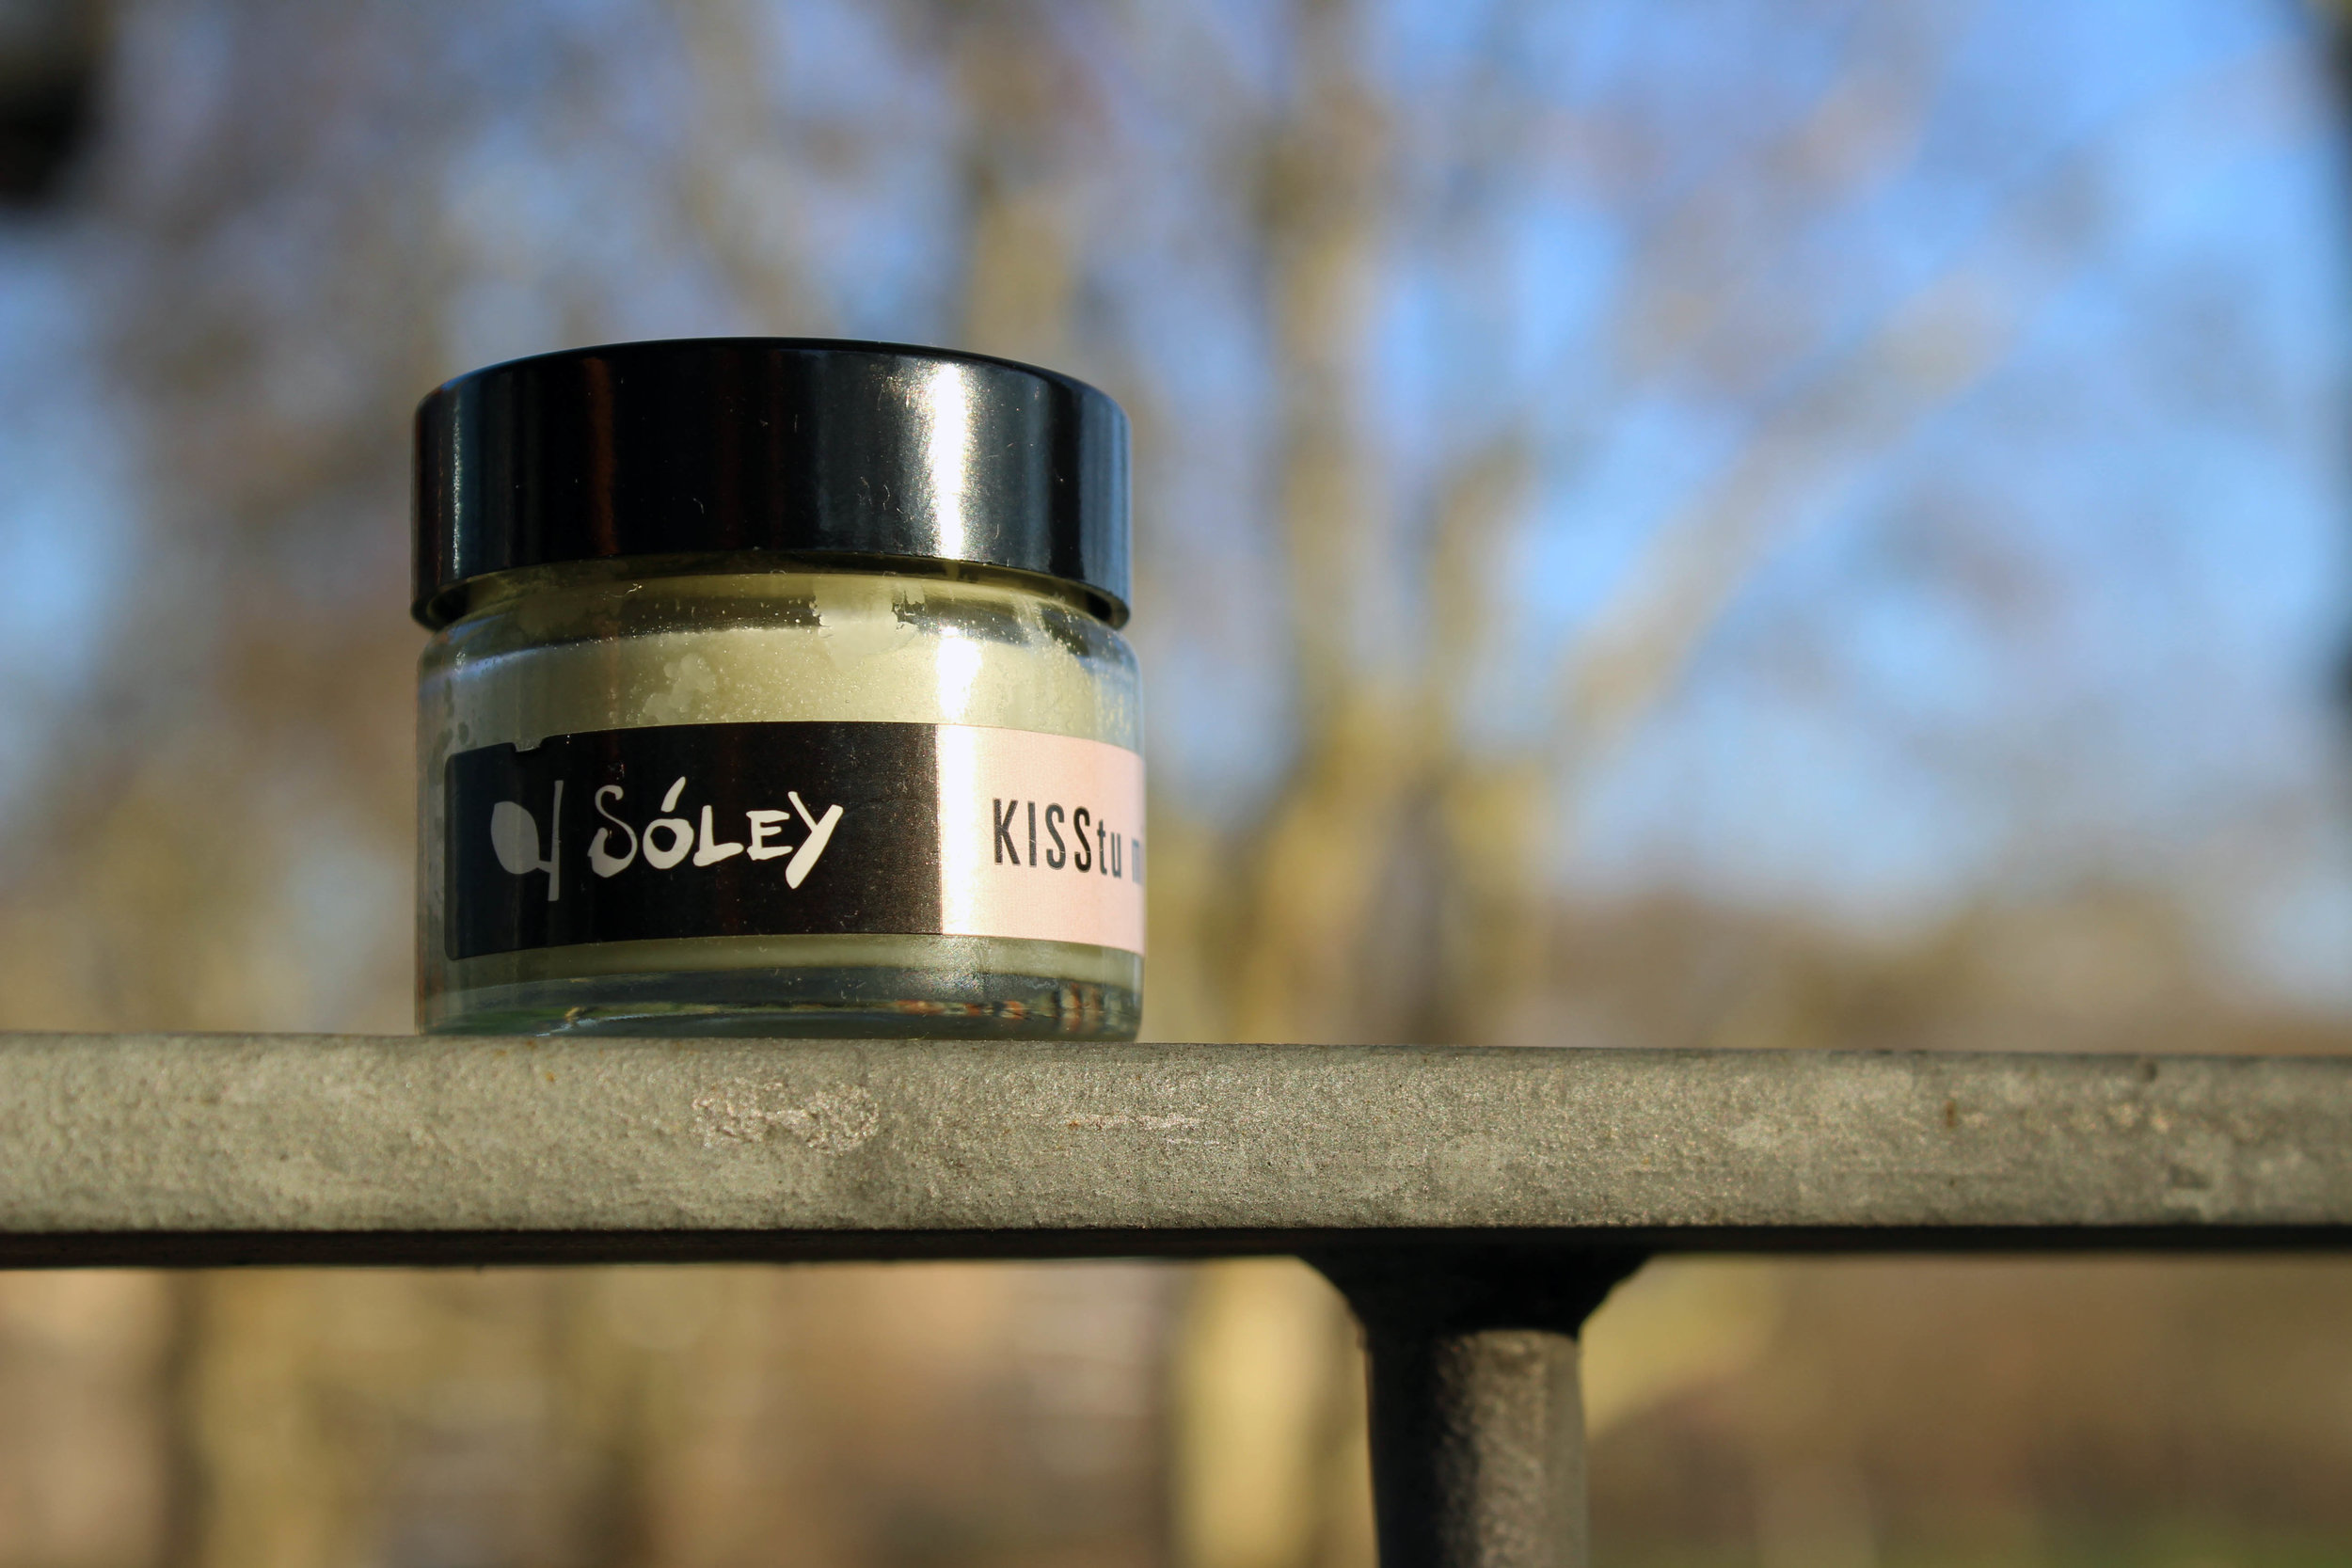 soley organics icelandic skincare and beauty brand.jpg